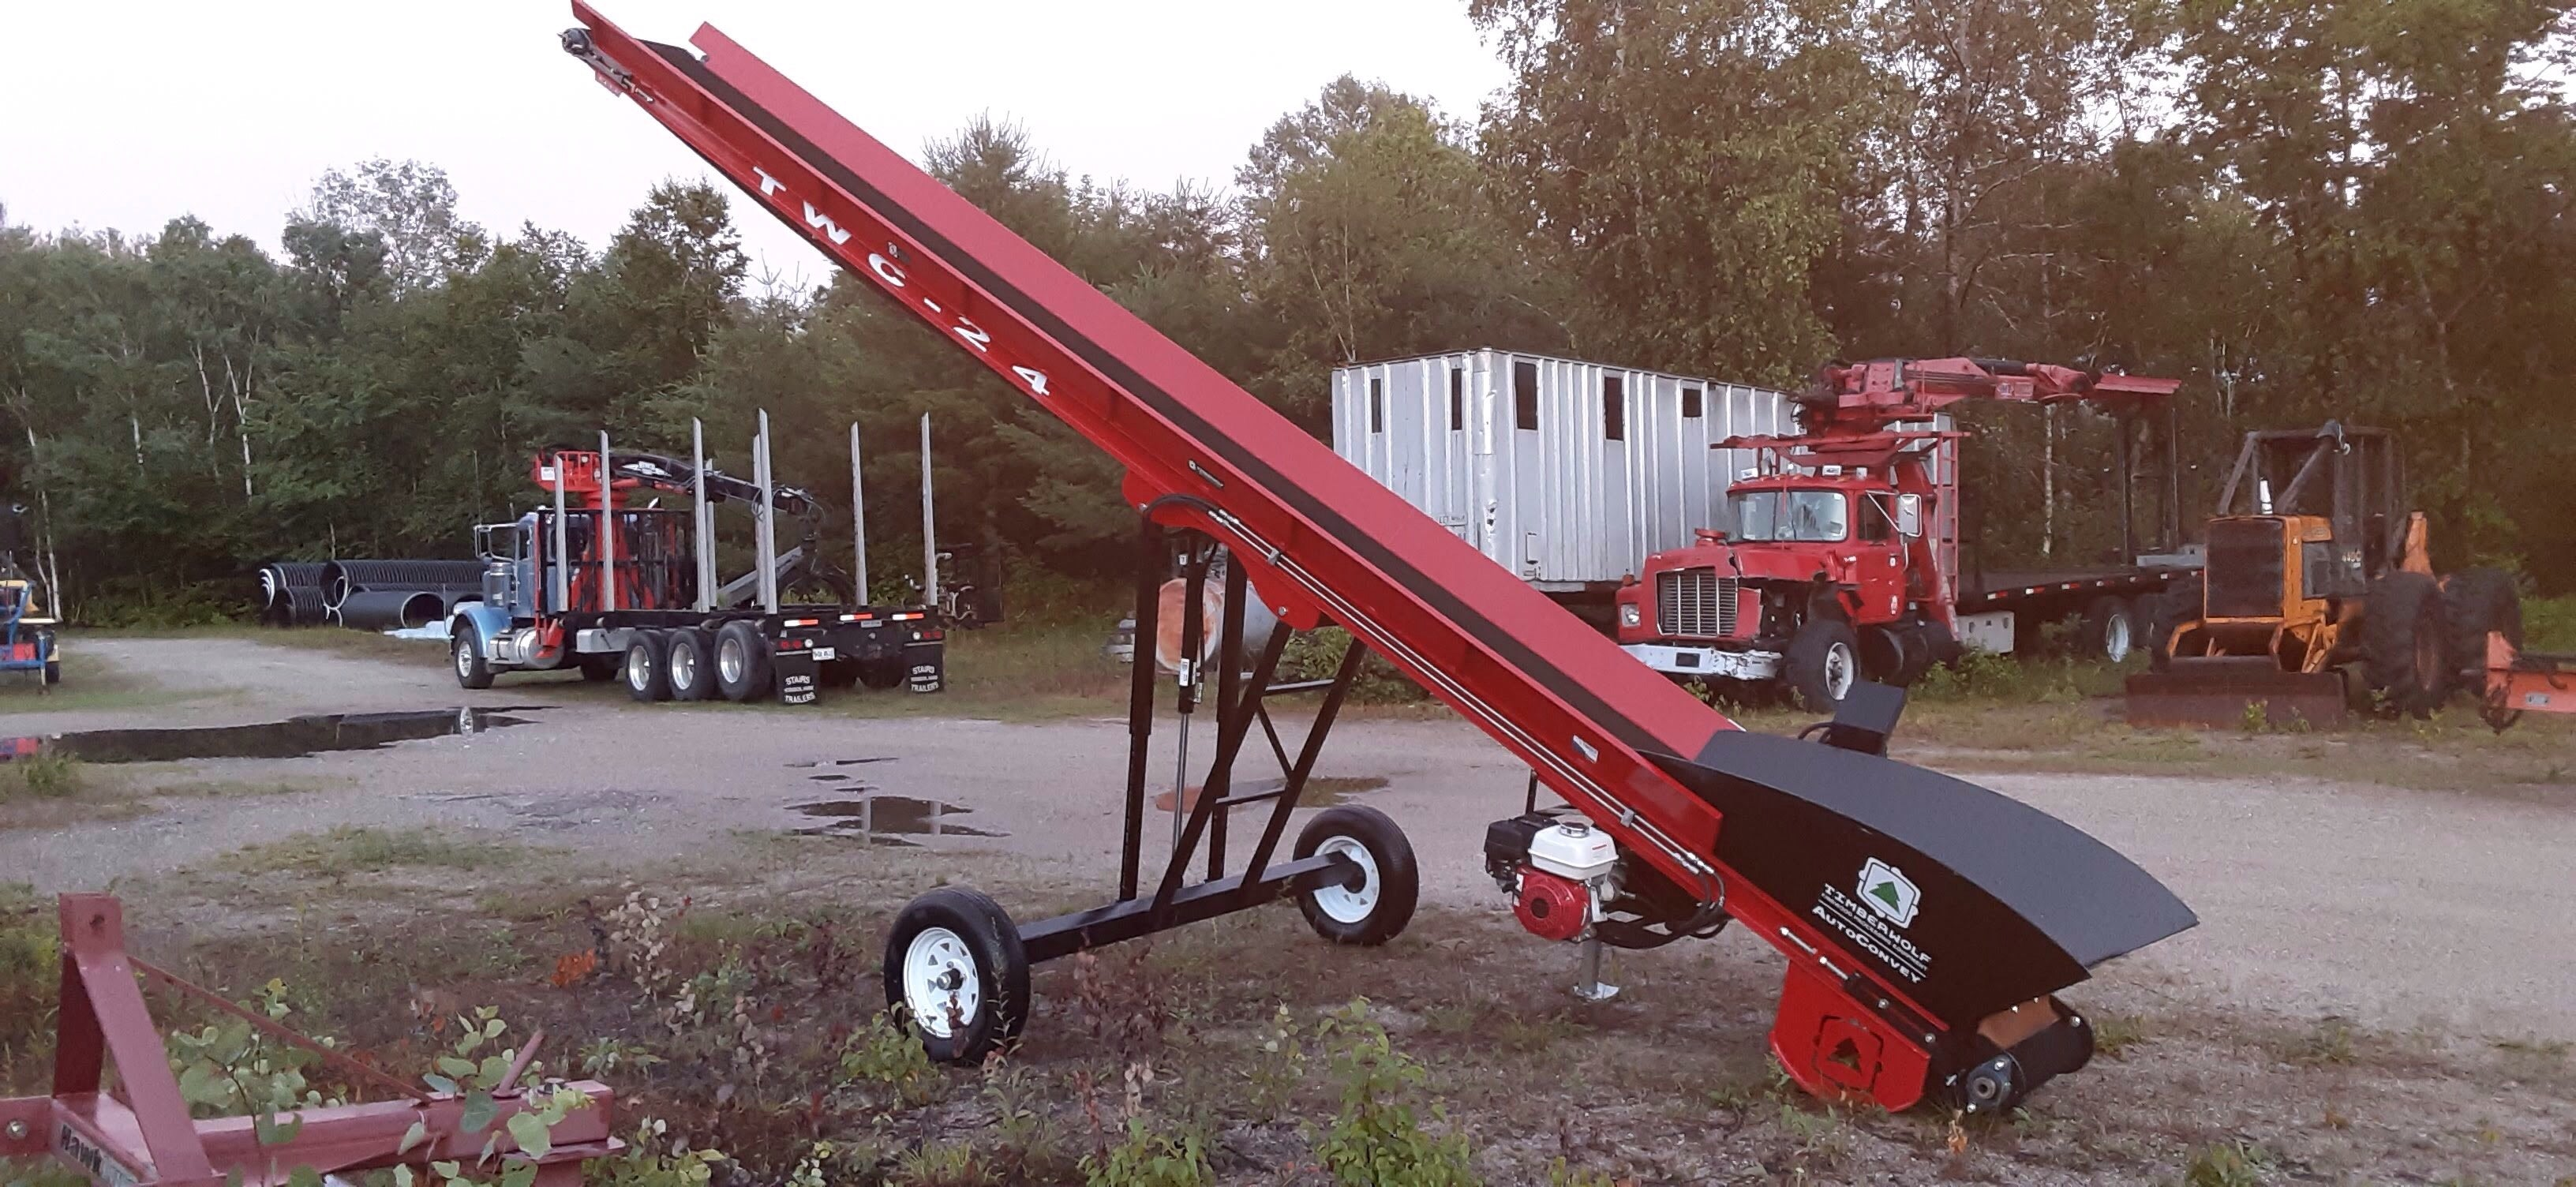 Call for Pricing- TWC-24 Rough Top Conveyor- Davis Logging and Equipment Hanover, ME